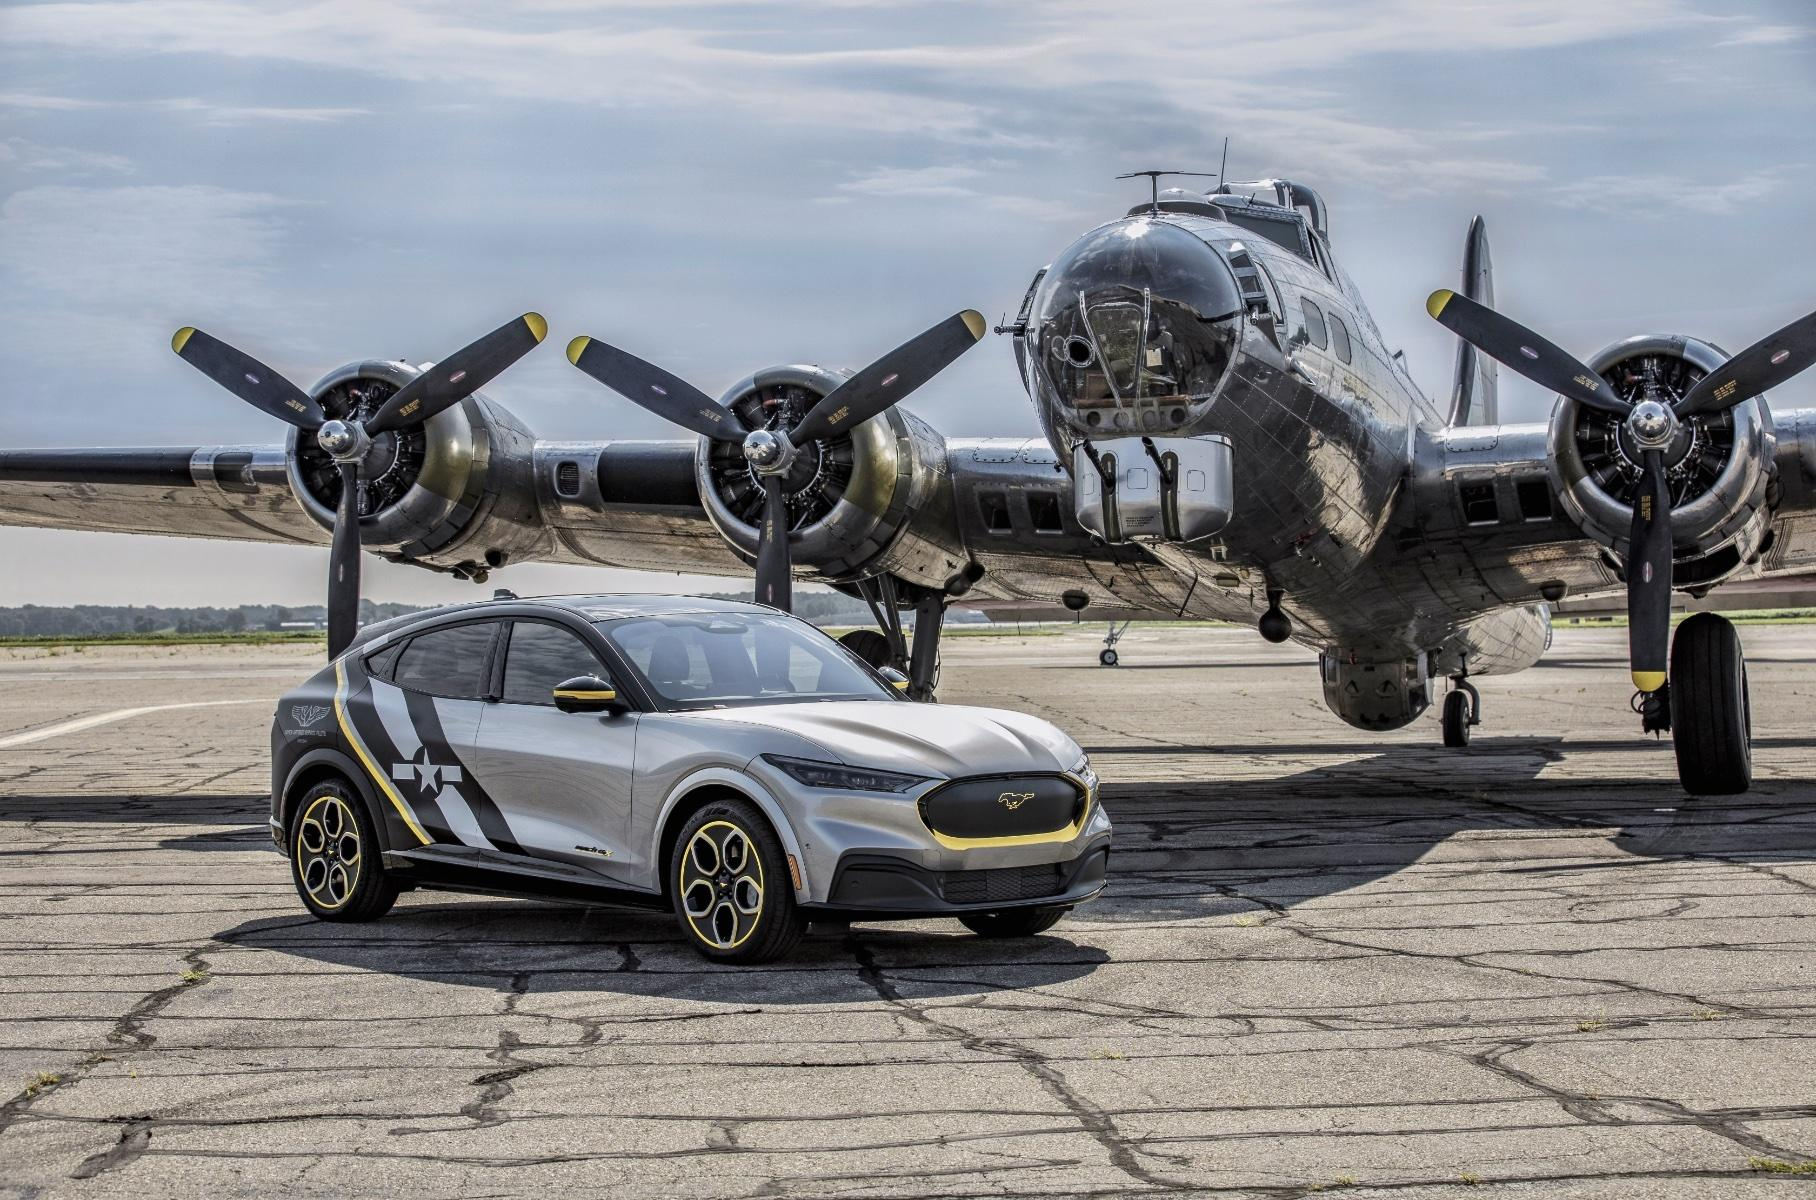 Ford has dedicated a specially built Mustang Mach-E SUV to WASP, or Women Airforce Service Pilots. The car just debuted at the 2021 EAA AirVenture Oshkosh that opened on July 26.